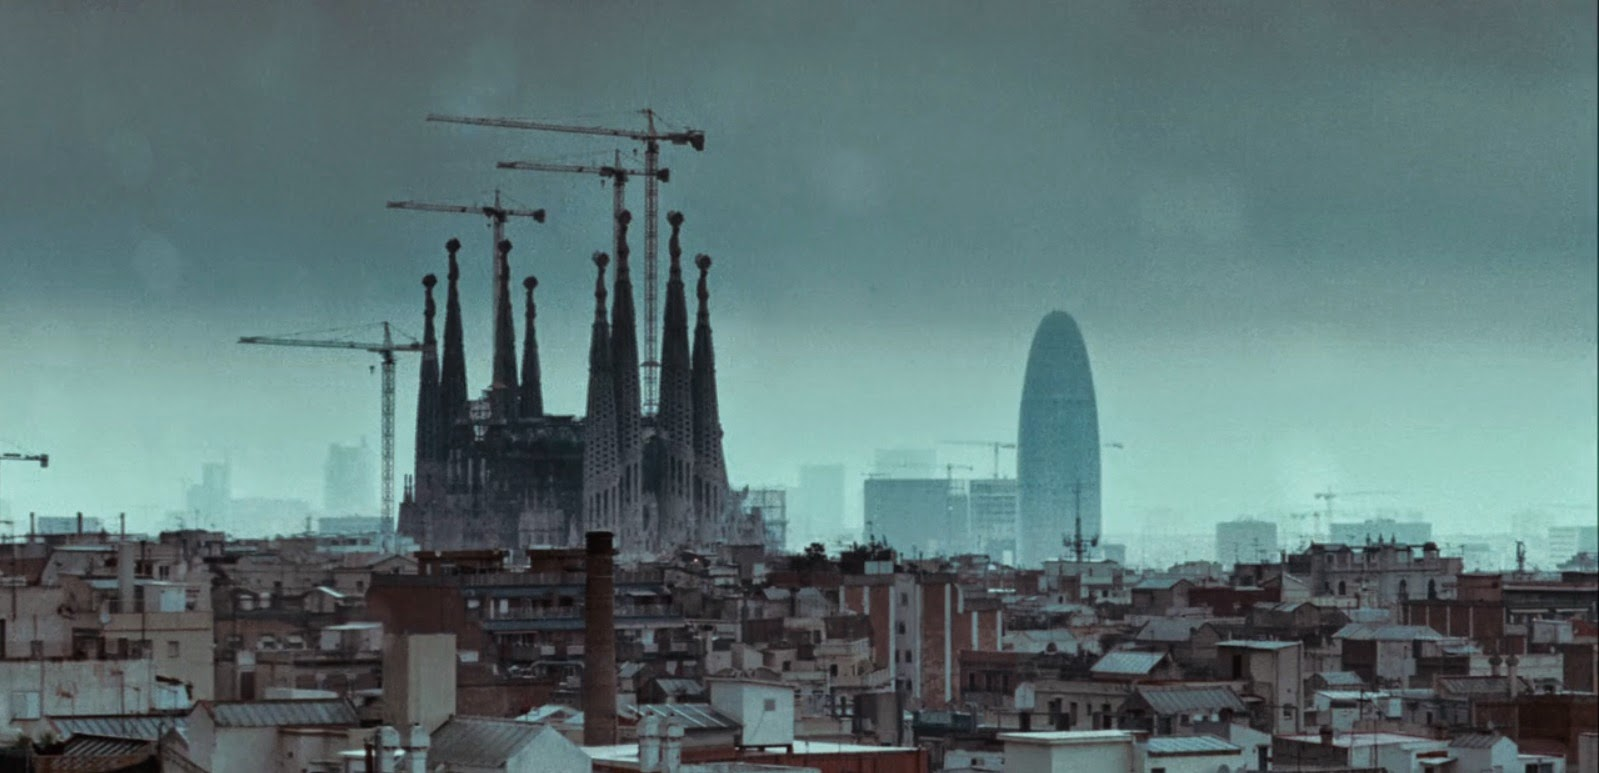 Screen grab, Biutiful, Barcelona skyline.